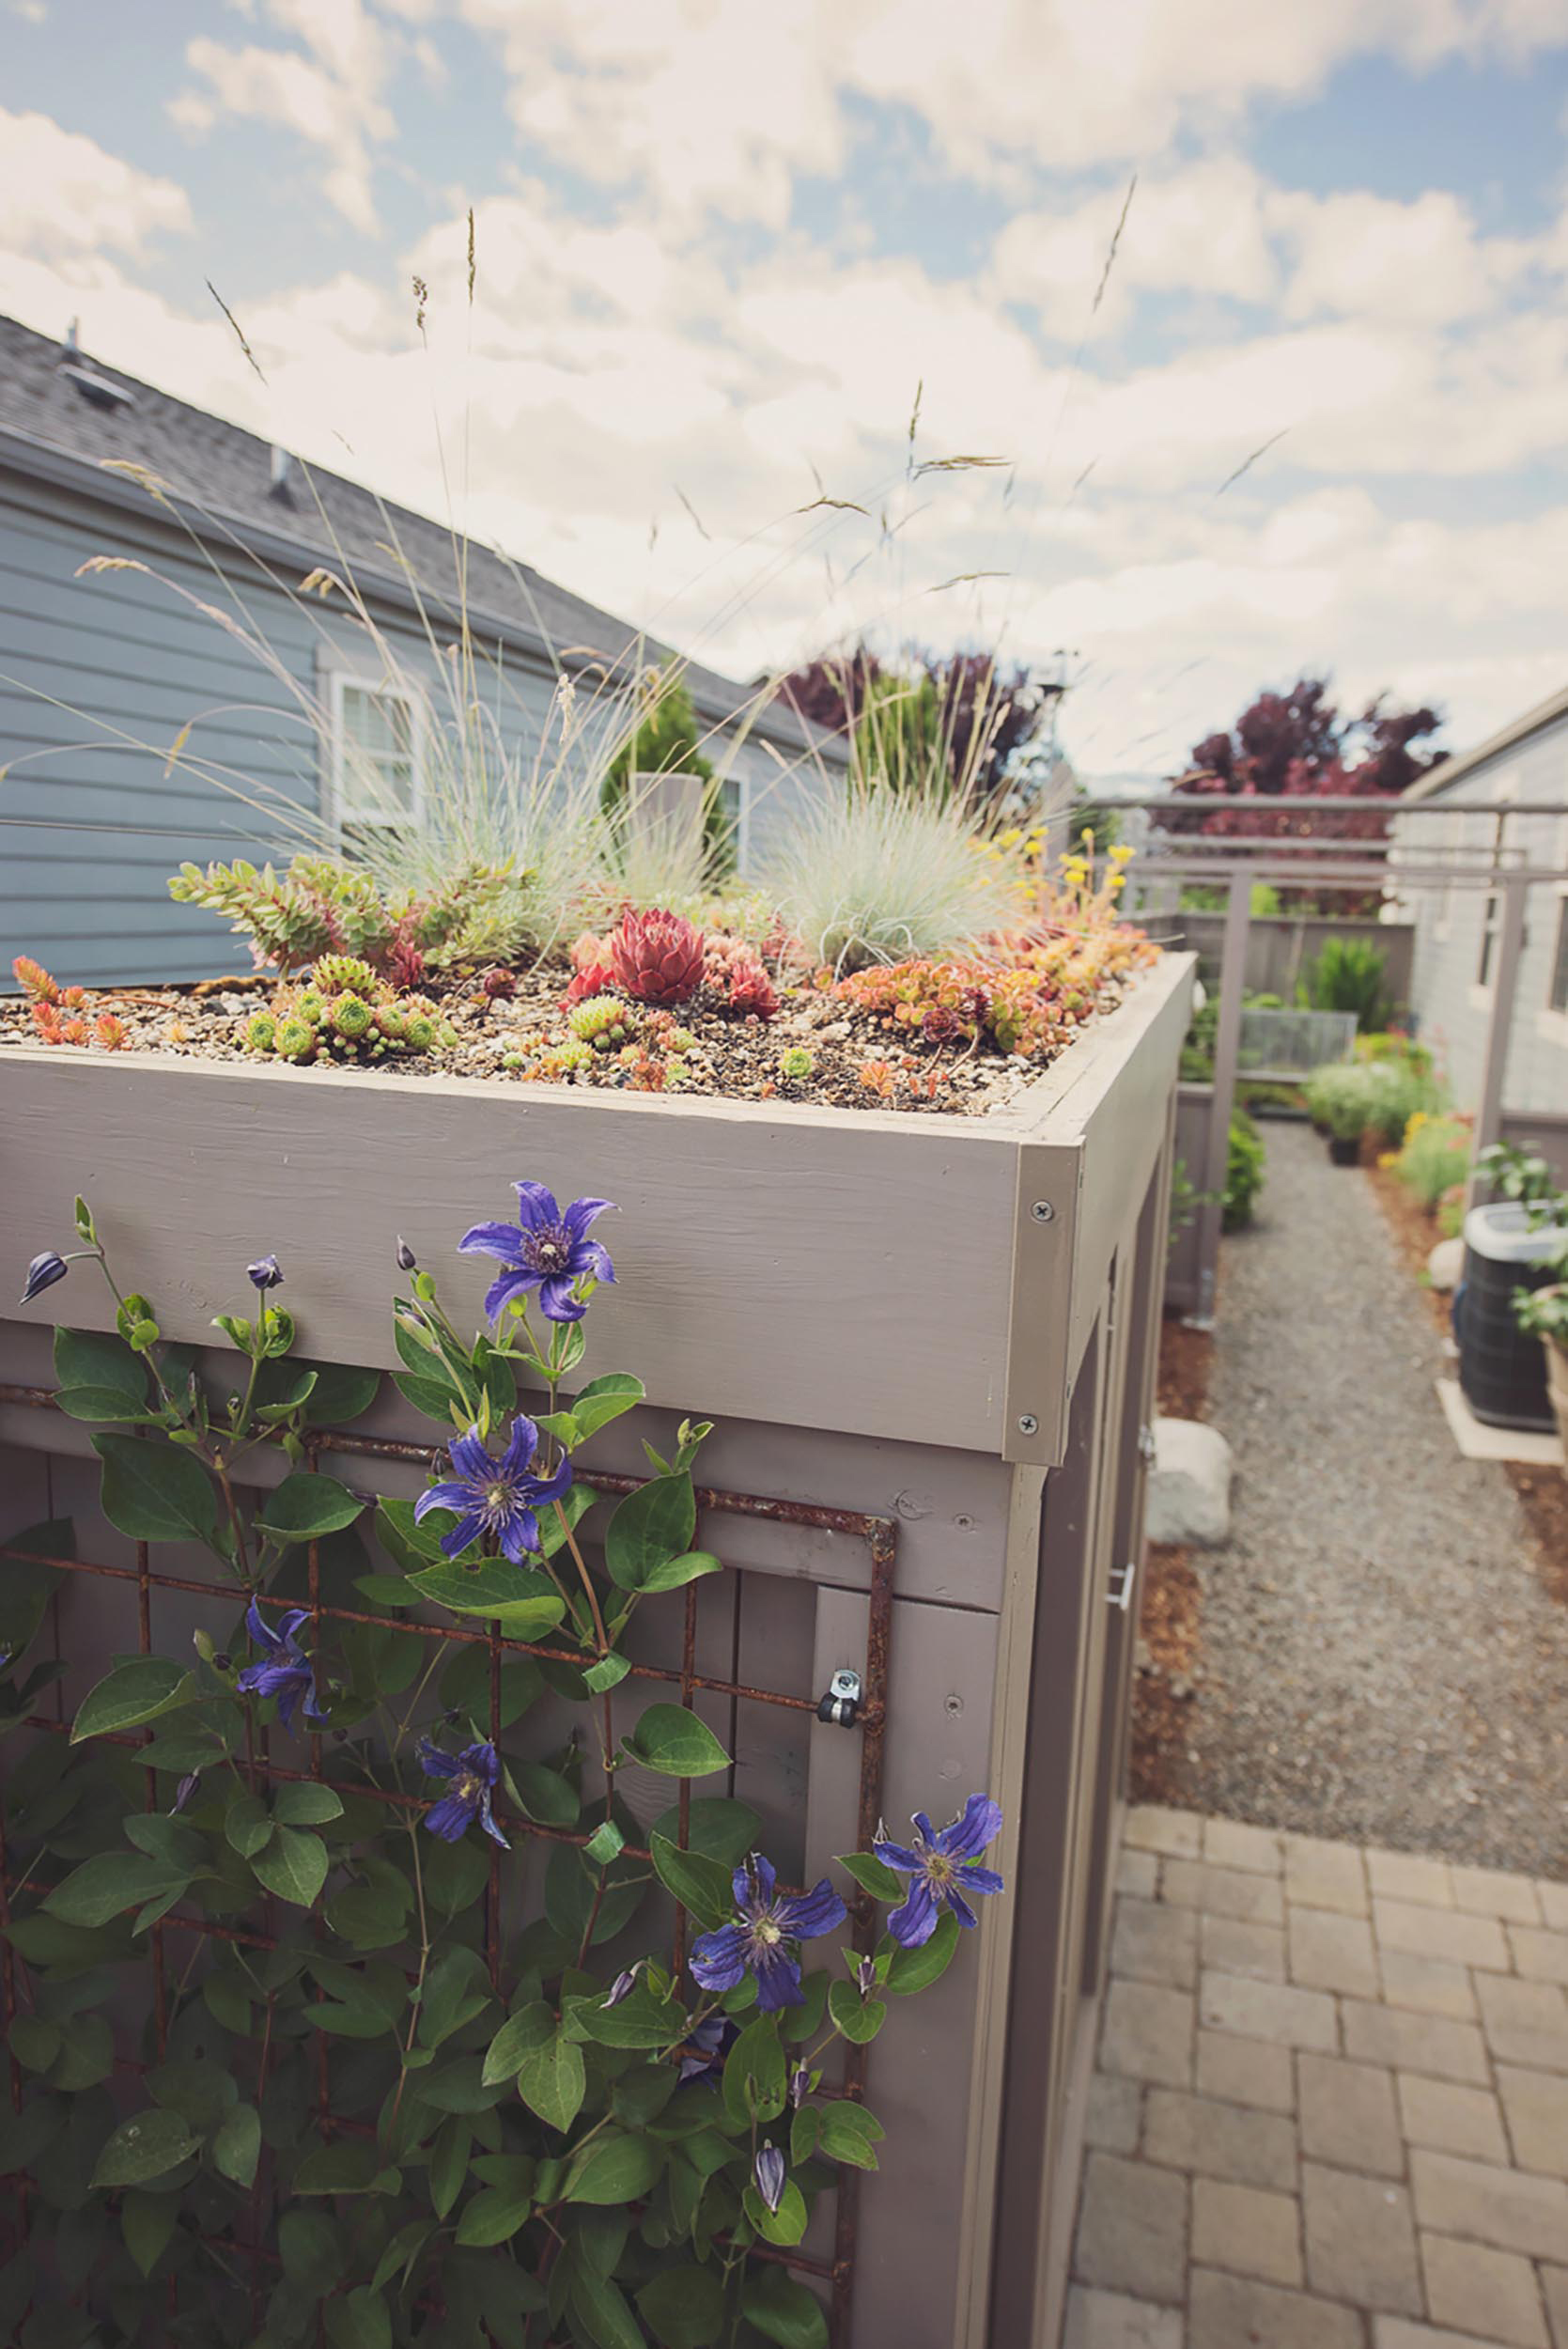 green roof on shed + sedum drought tolerant plantings + climbing clematis on steel wire trellis + holland style pavers